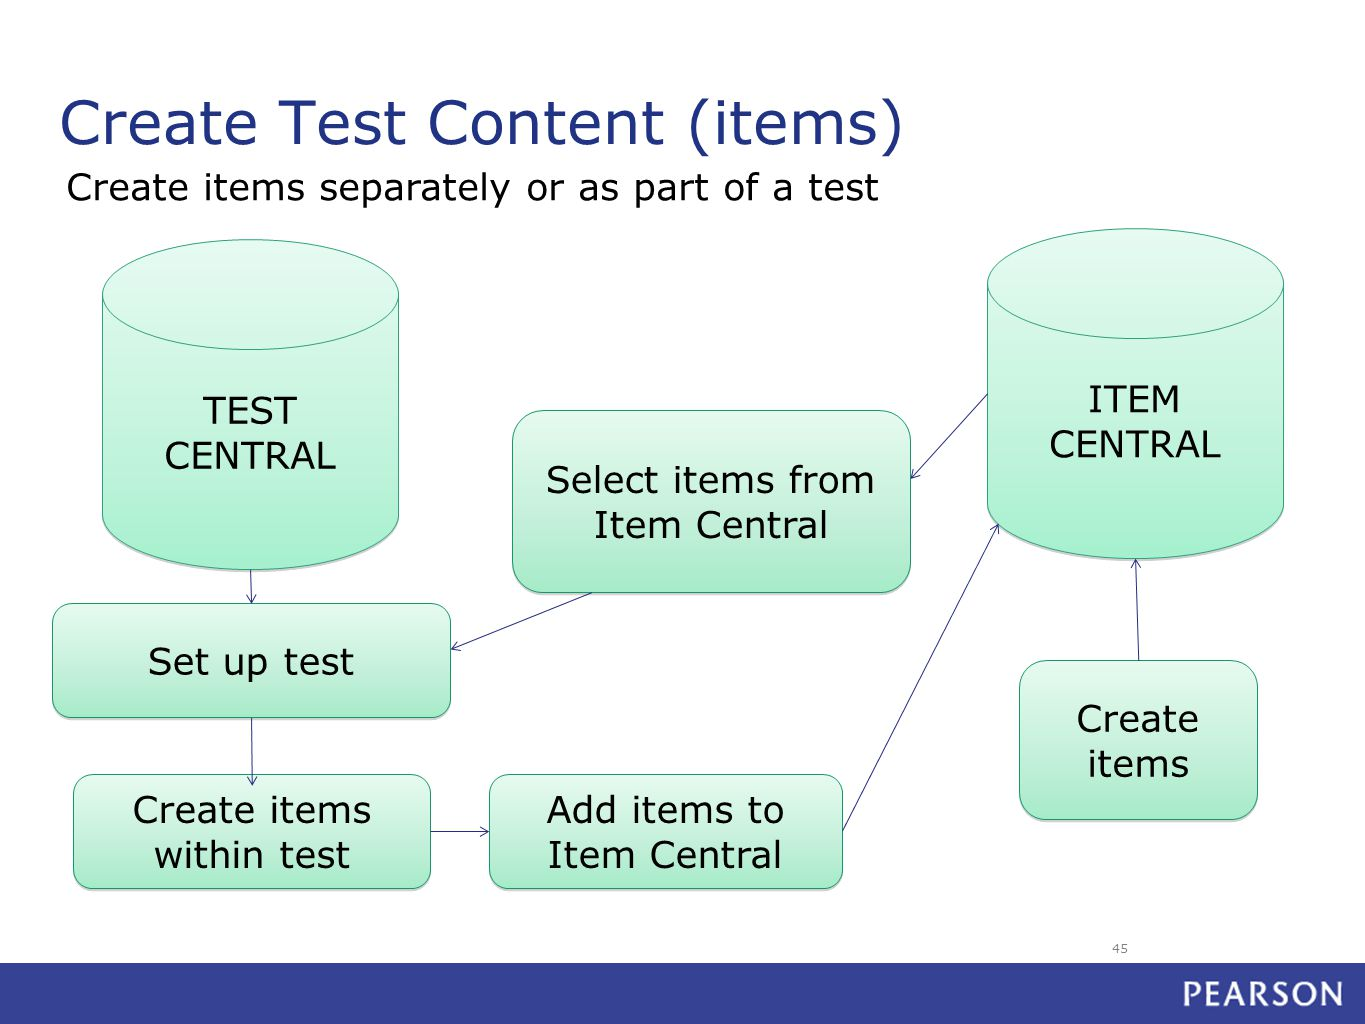 Create Test Content (items) ITEM CENTRAL TEST CENTRAL Create items Set up test Create items within test Add items to Item Central Select items from Item Central Select items from Item Central Create items separately or as part of a test 45